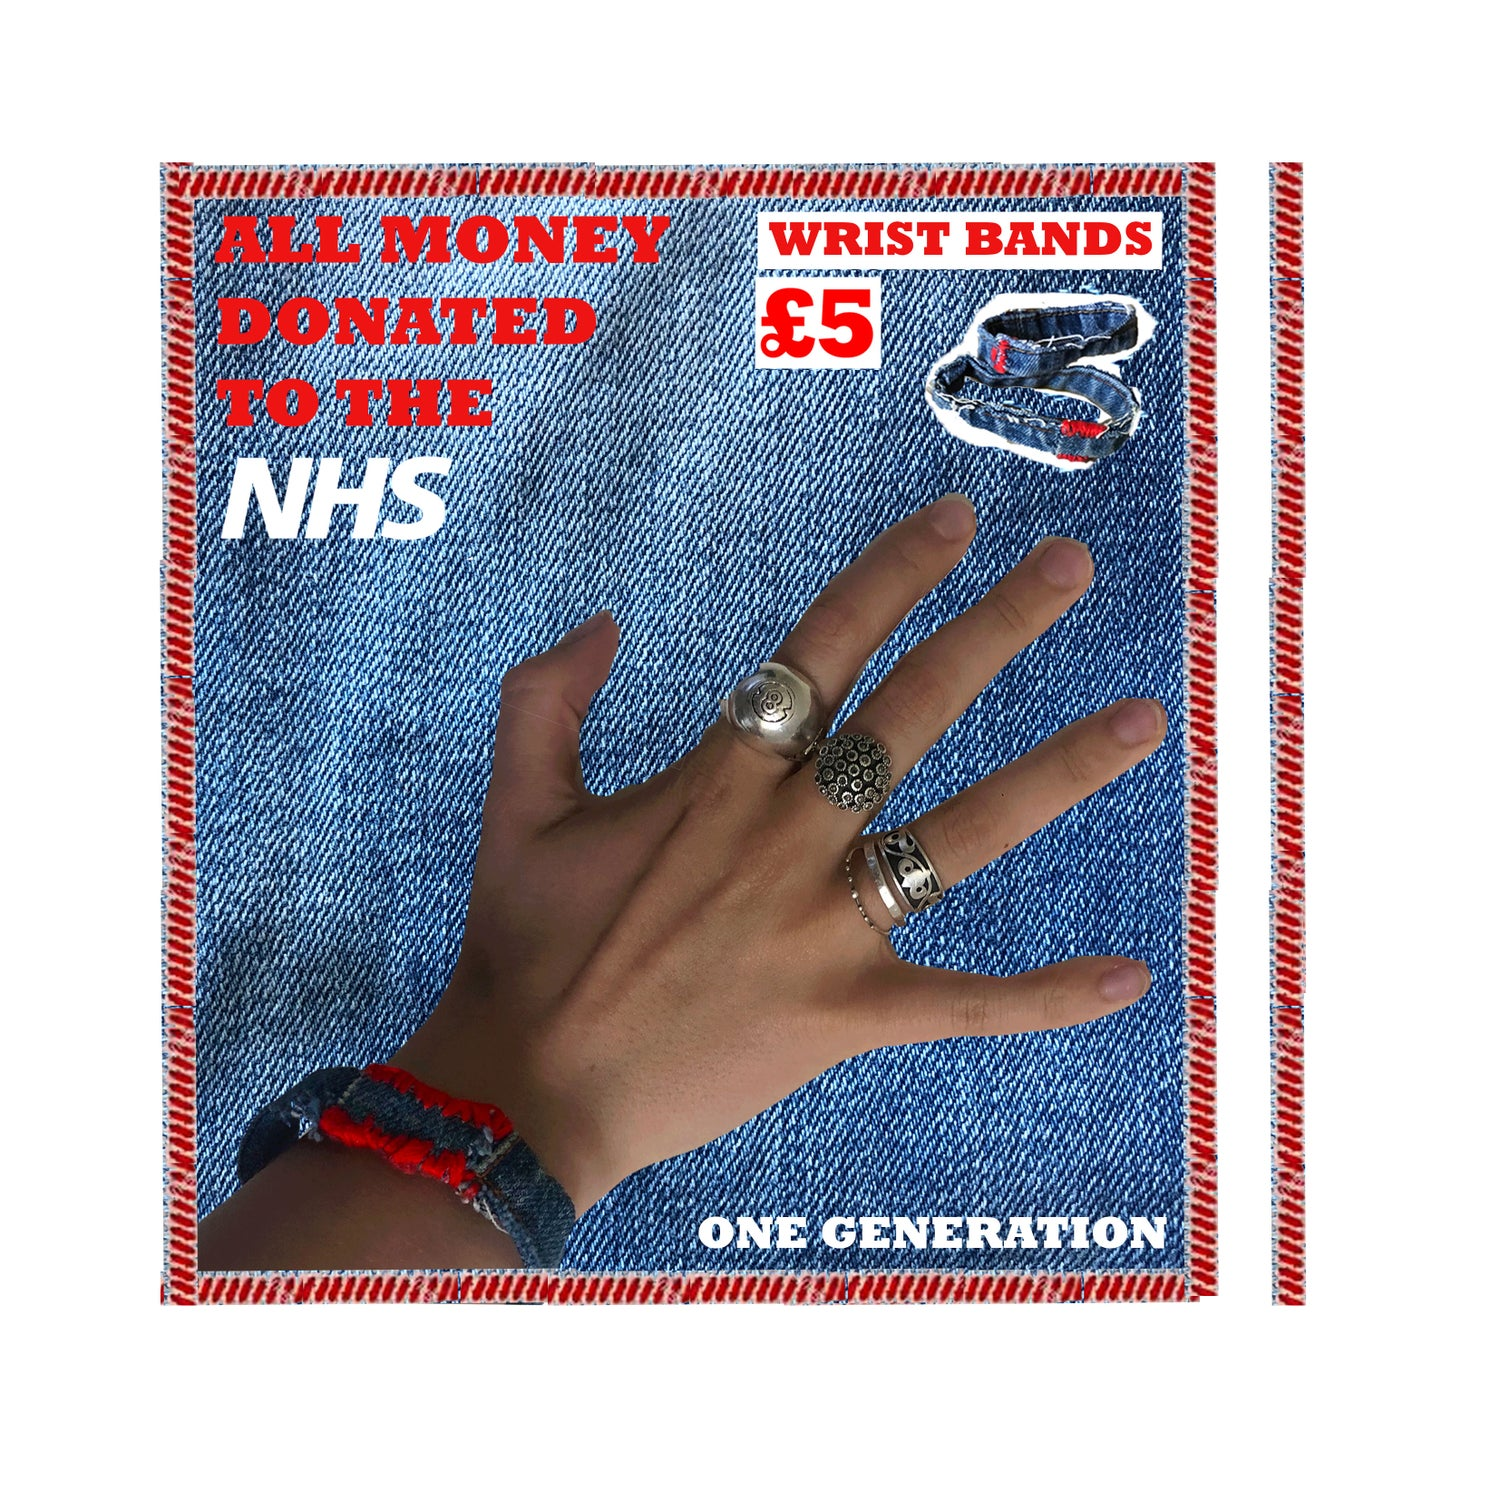 Image of NHS WRIST BANDS